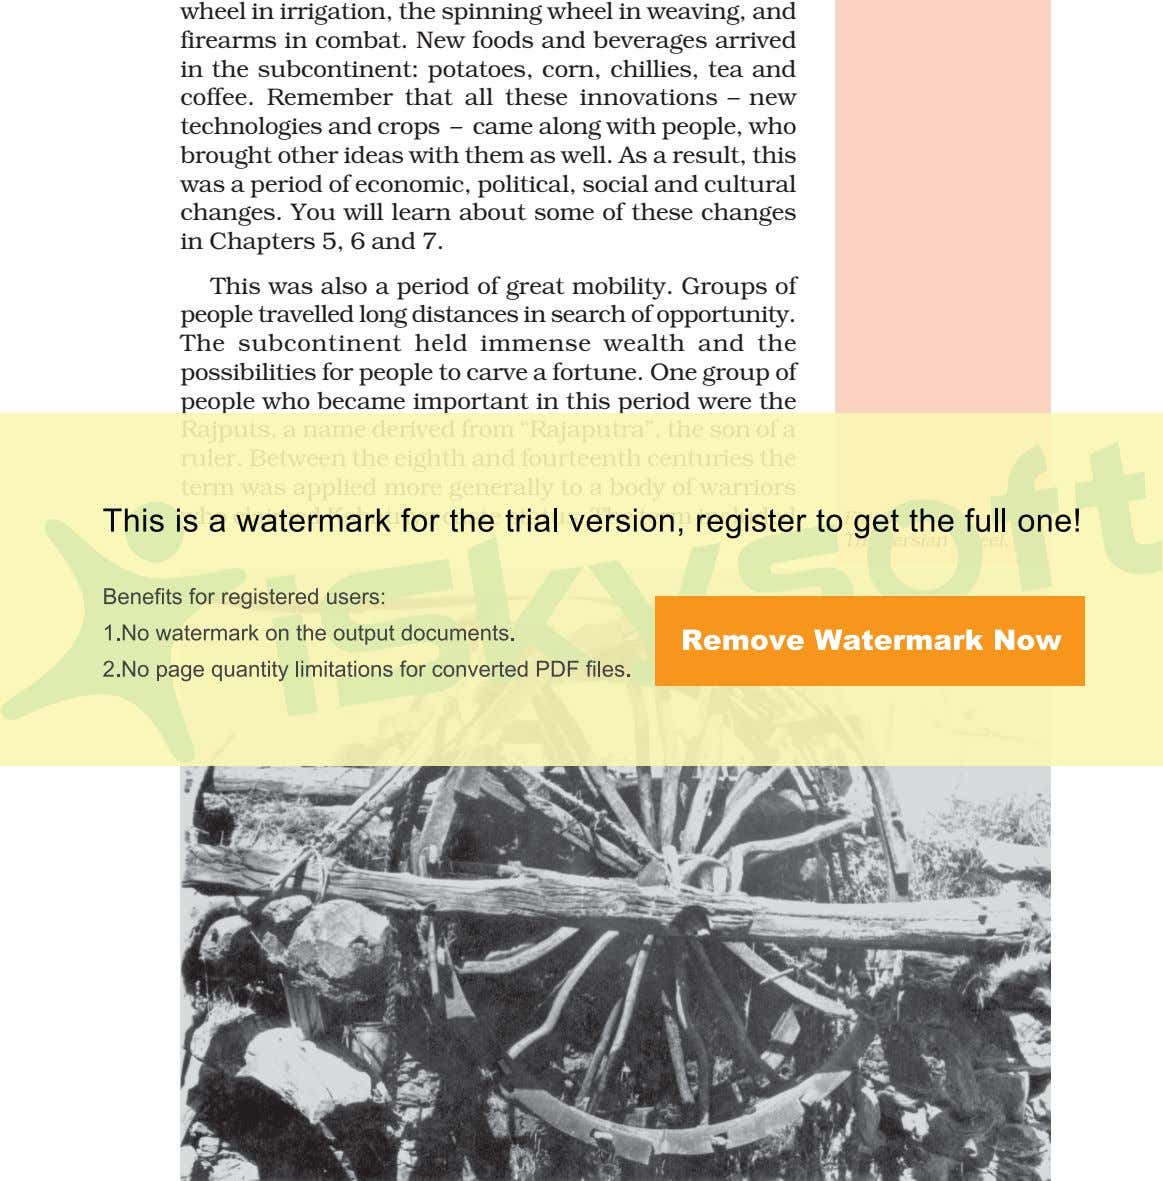 wheel in irrigation, the spinning wheel in weaving, and firearms in combat. New foods and